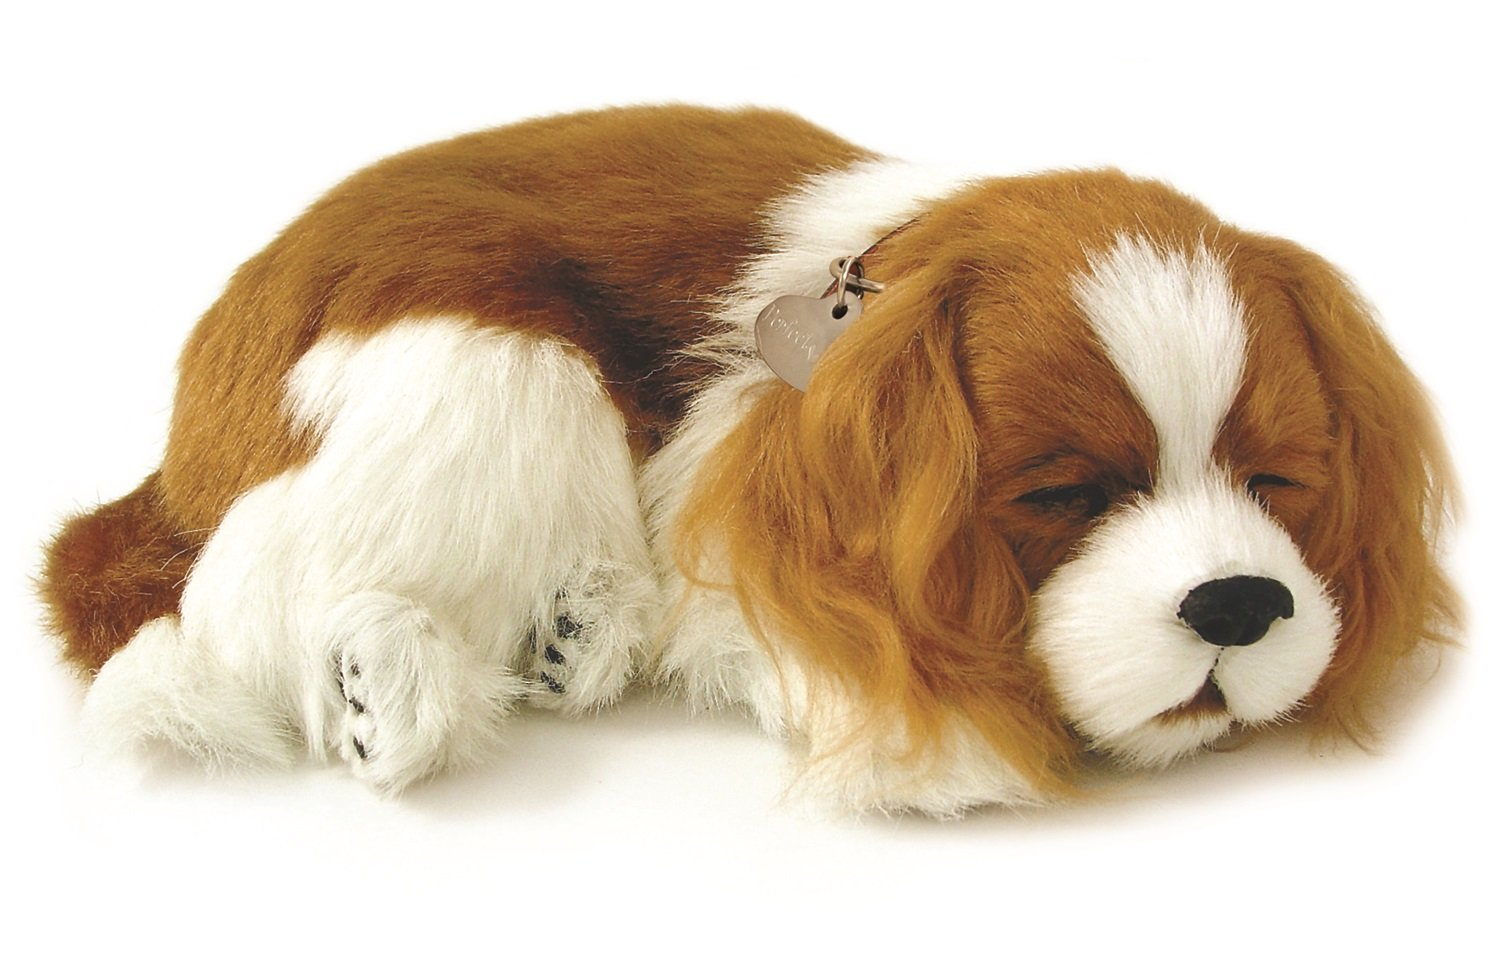 5Star-TD Cavalier King Charles Animated Pet by Perfect Petzzz (Image #1)